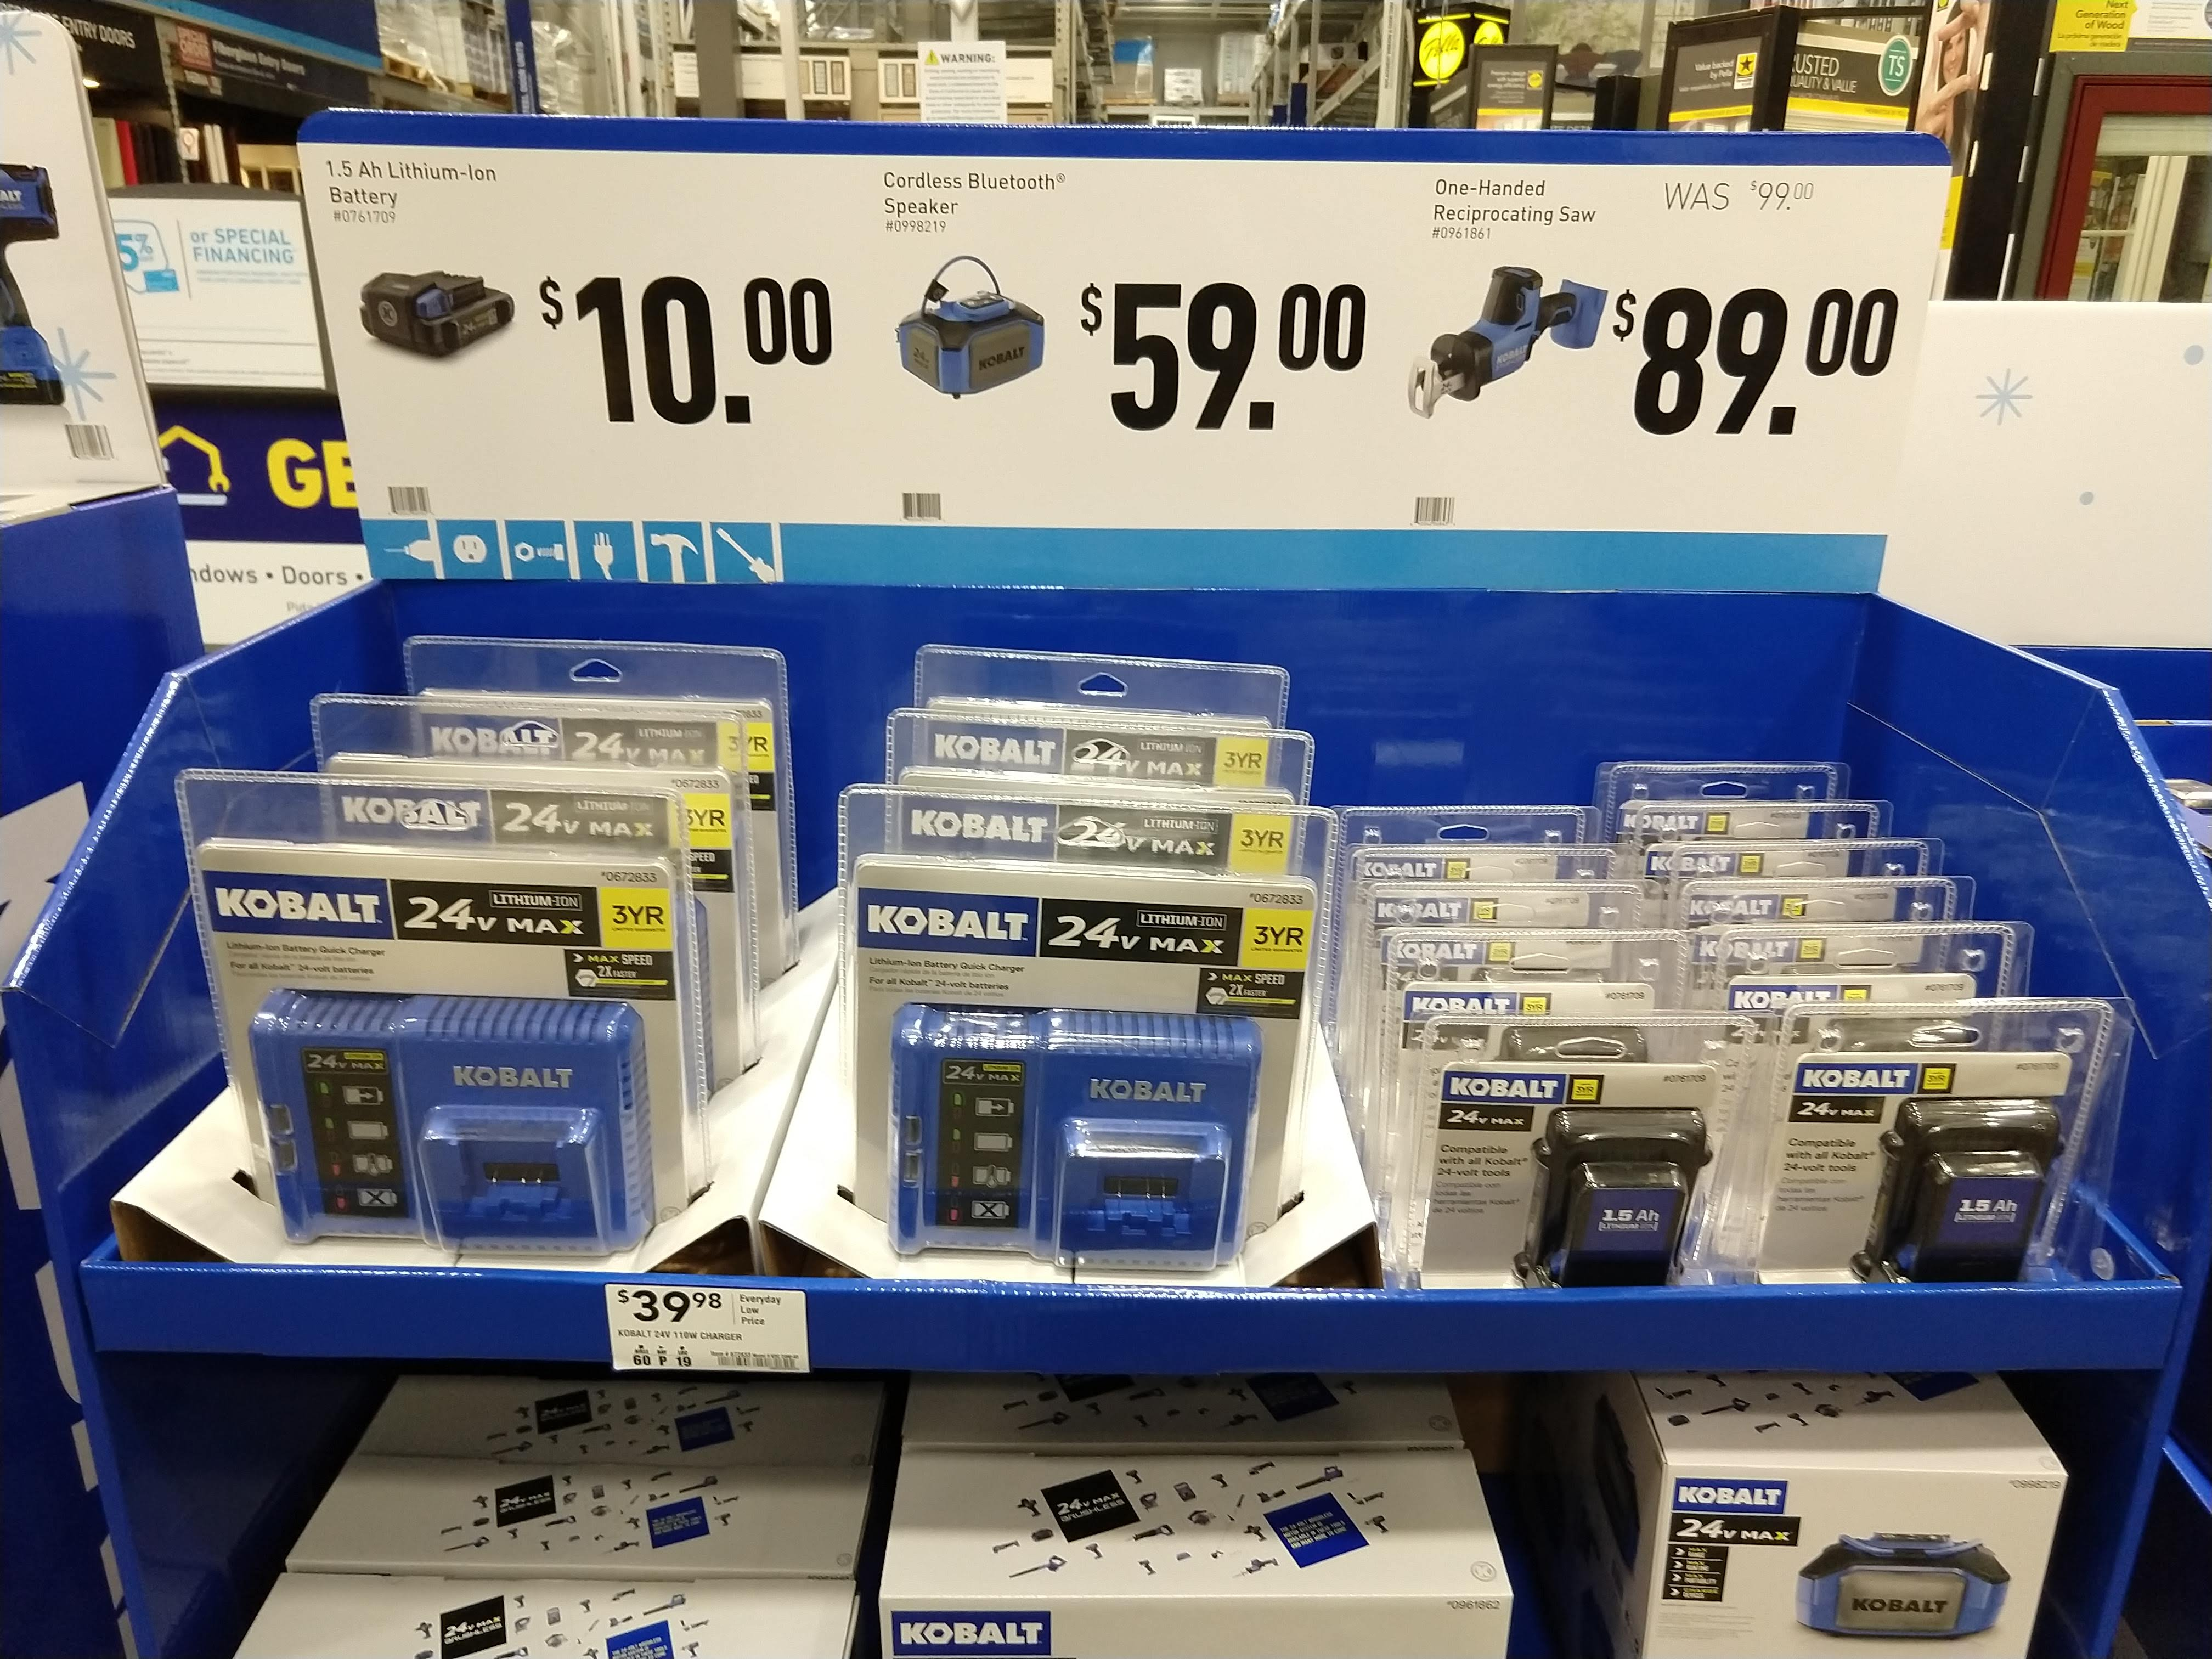 Kobalt 24-volt Max 1.5-Amp-Hours Lithium Power Tool Battery @Lowes for $10